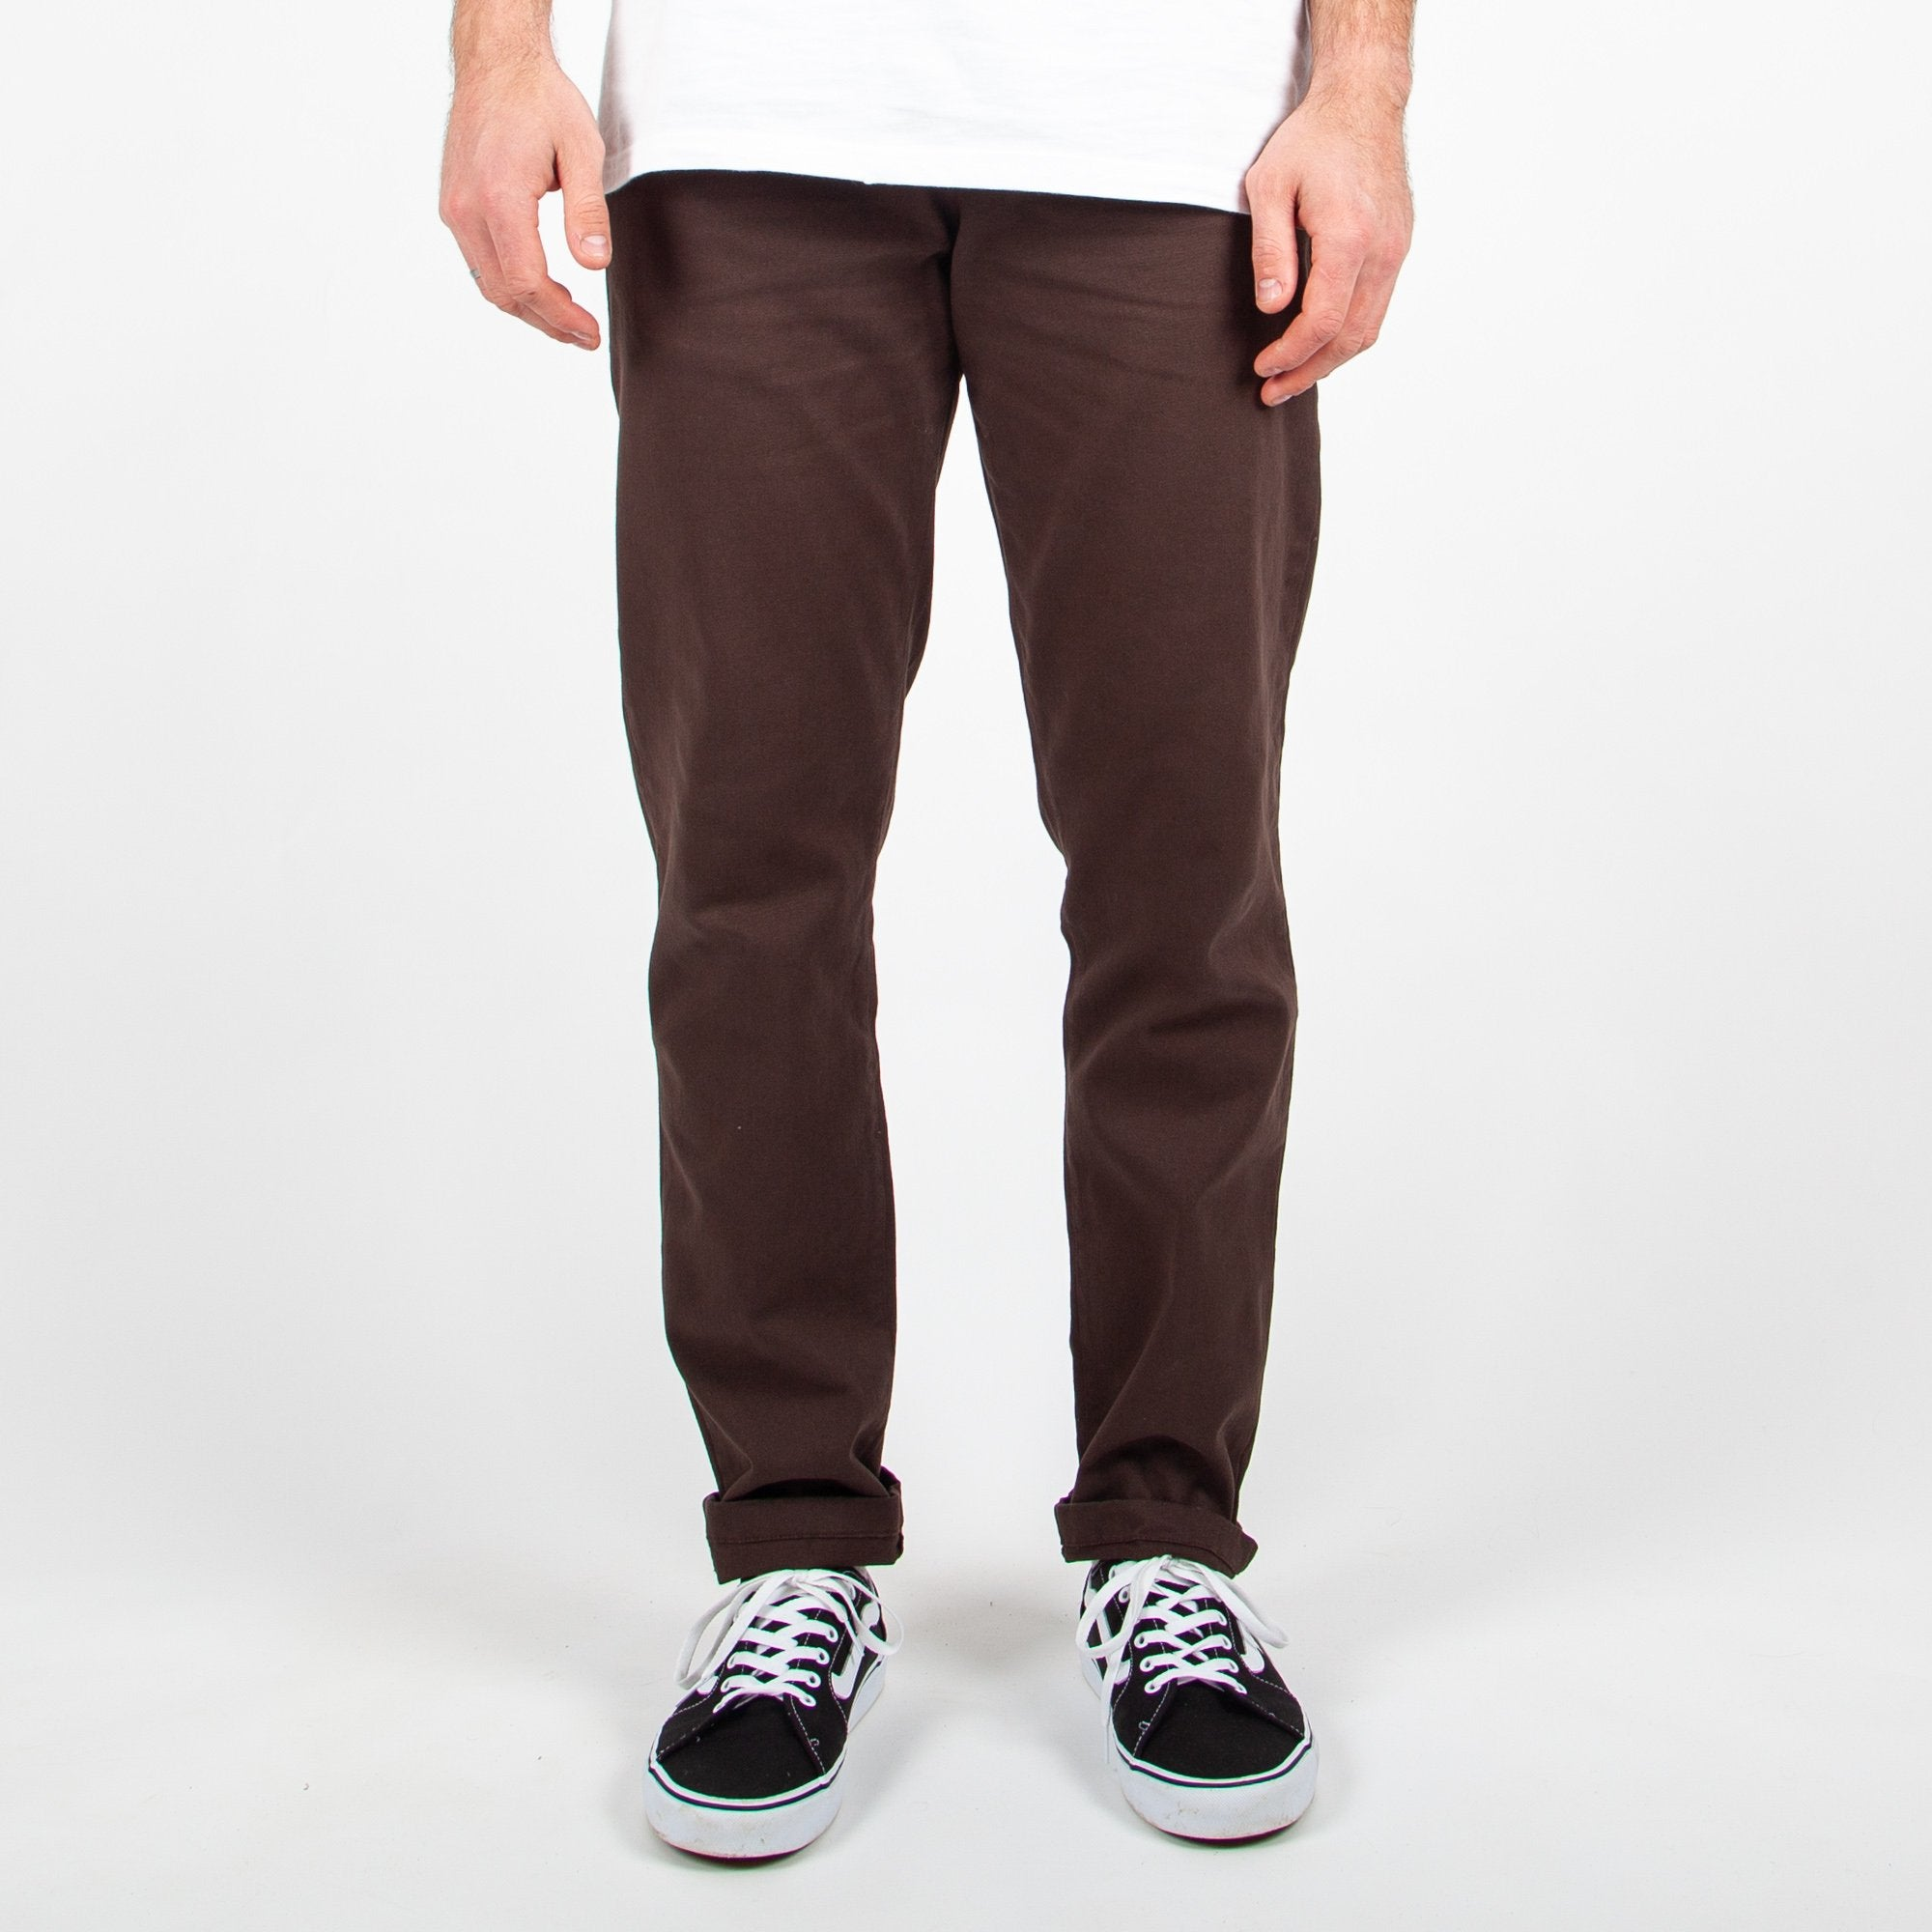 Daily Trouser - Brown image 2